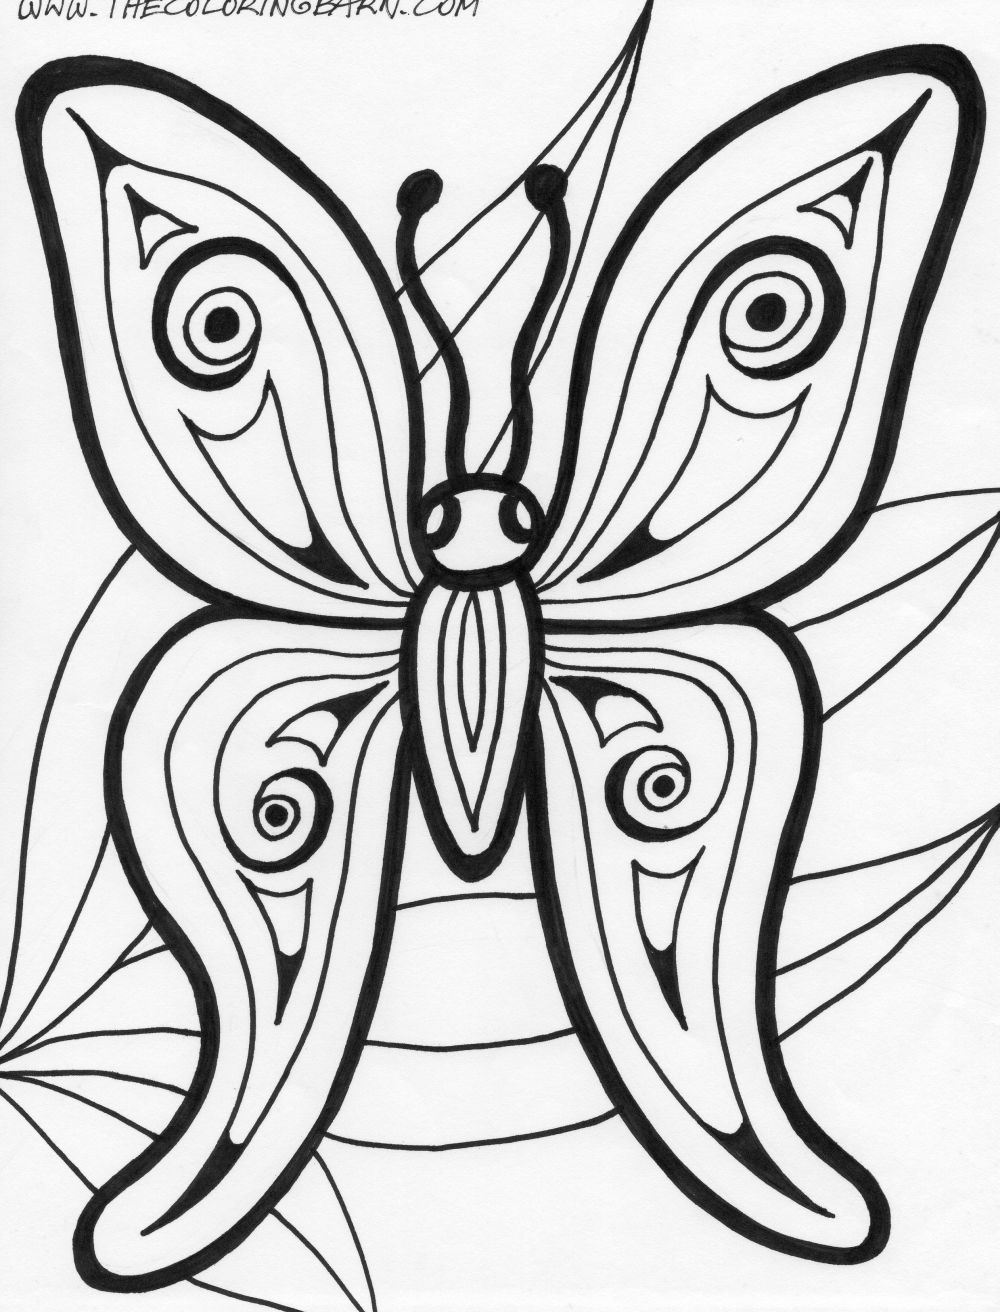 Coloring Pages for Adults - Squidoo : Welcome to Squidoo